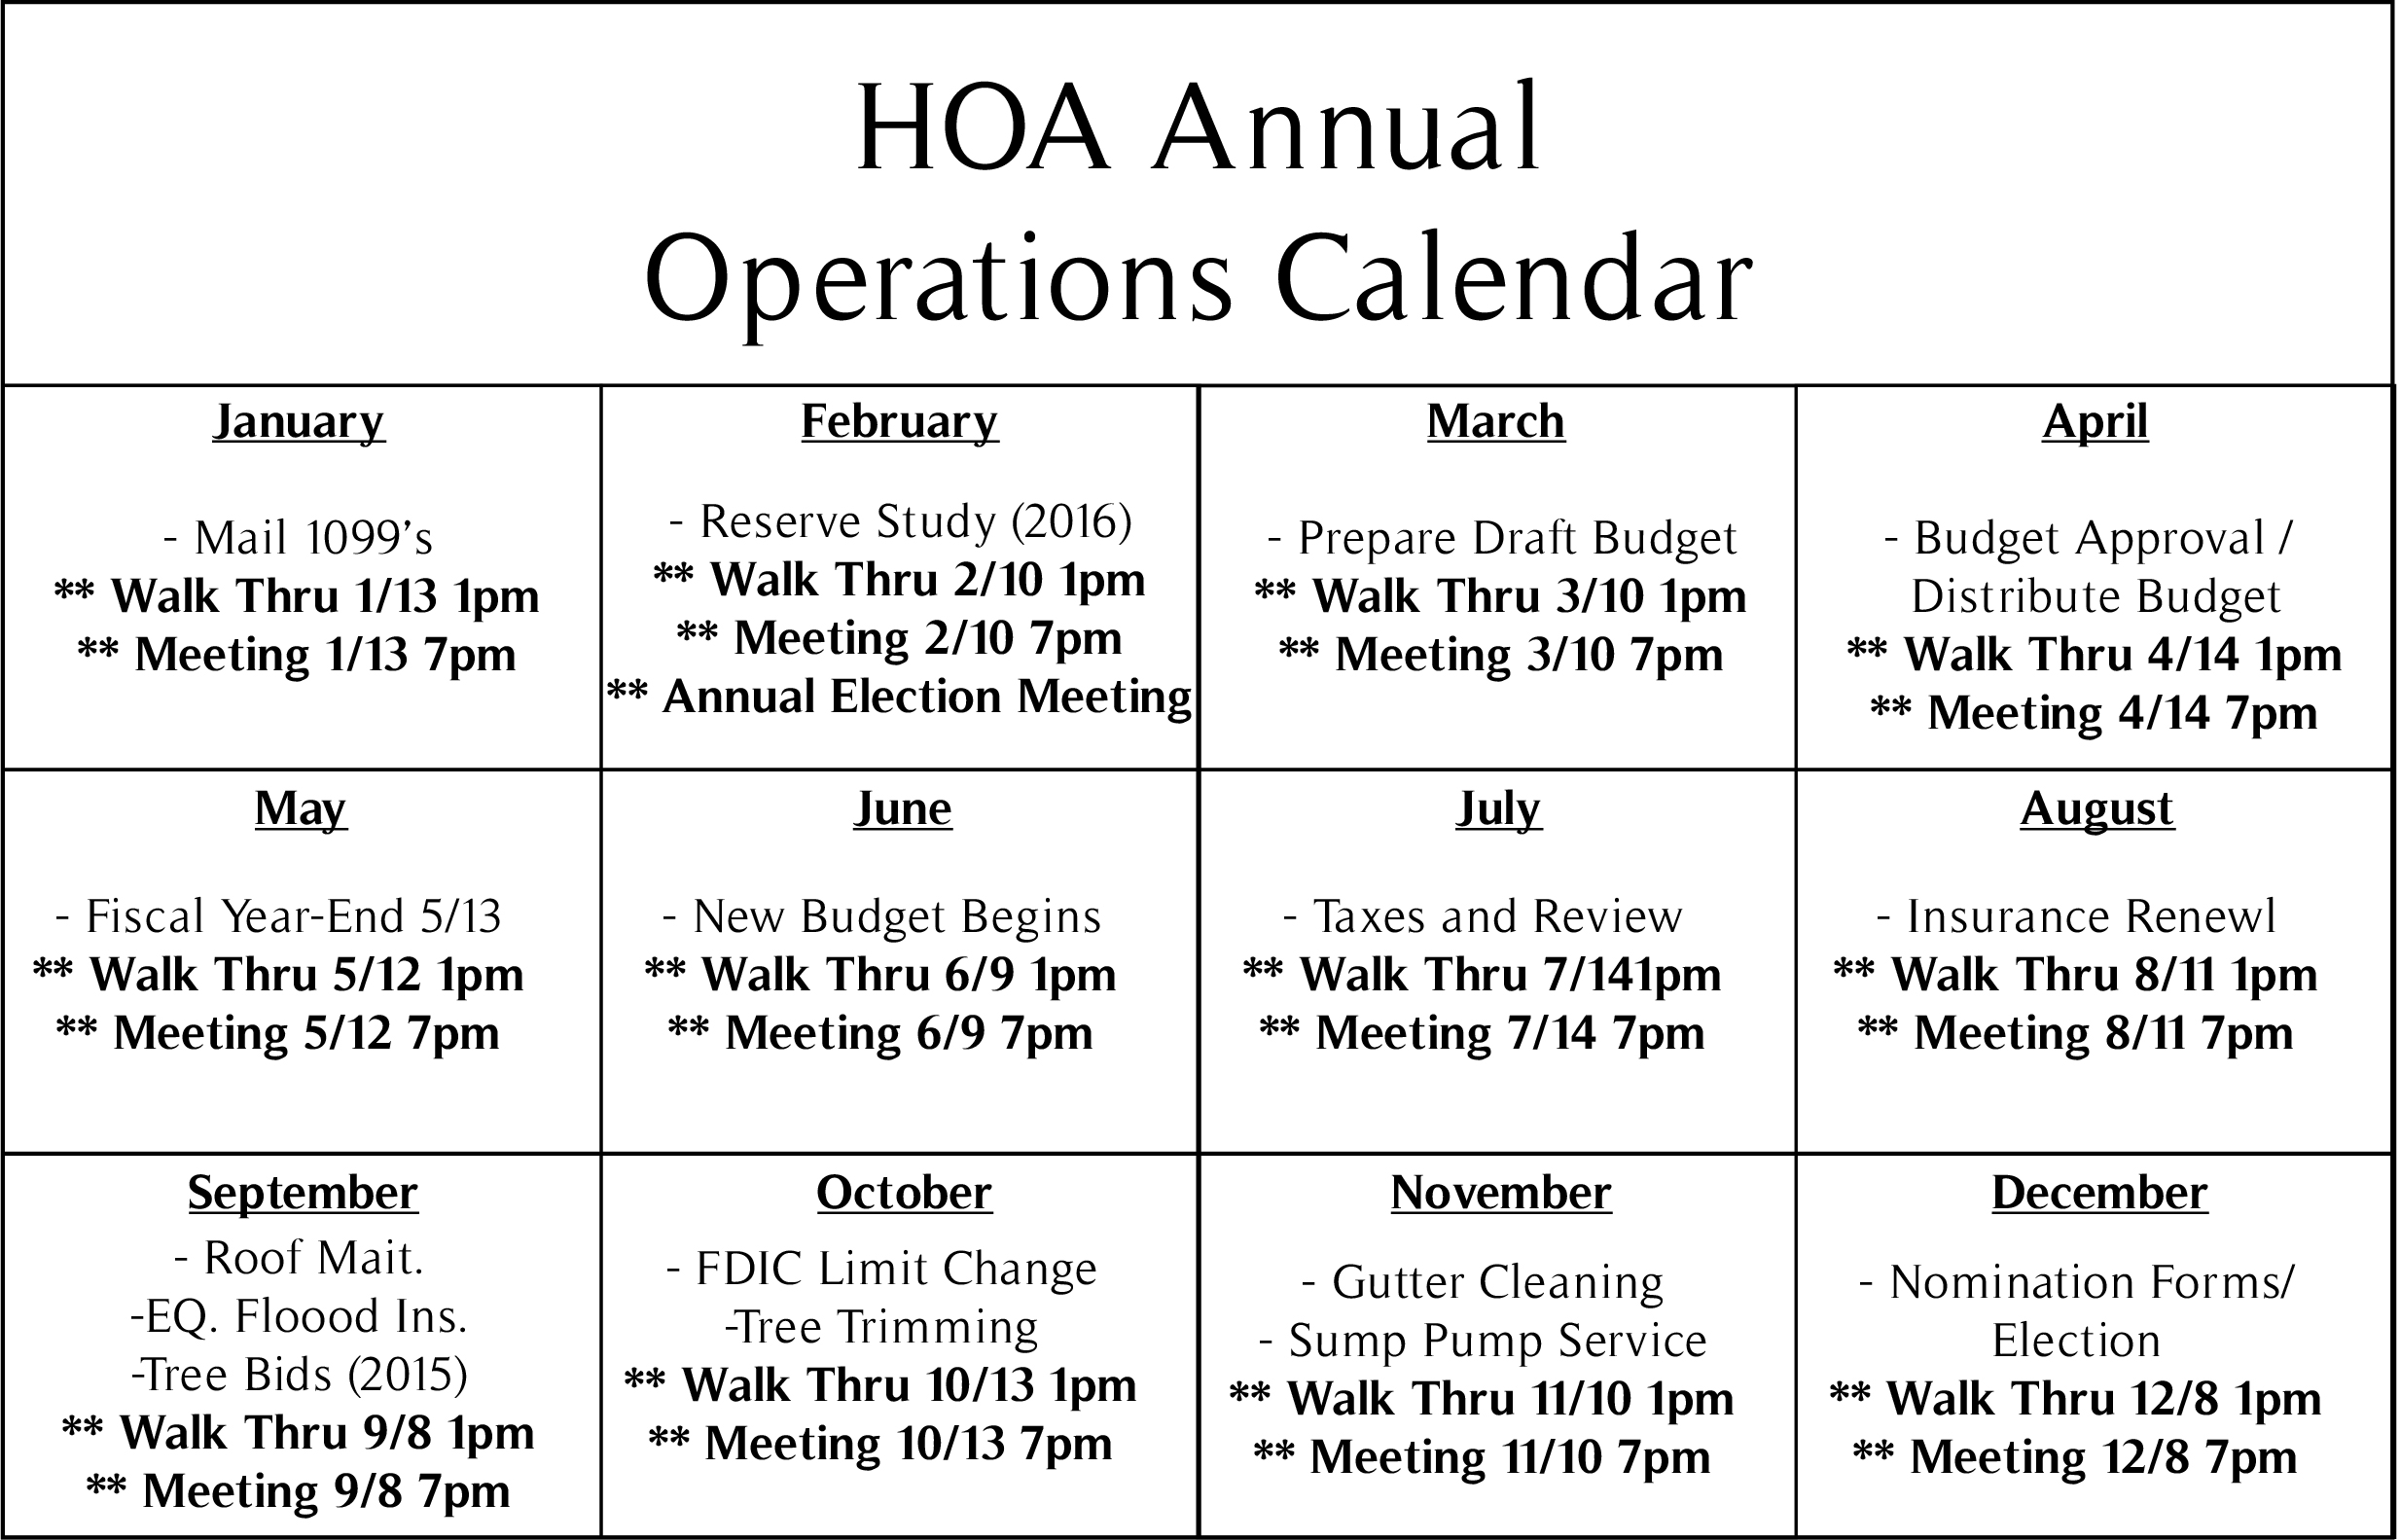 HOA Annual Operations Calendar | CAC mgmt